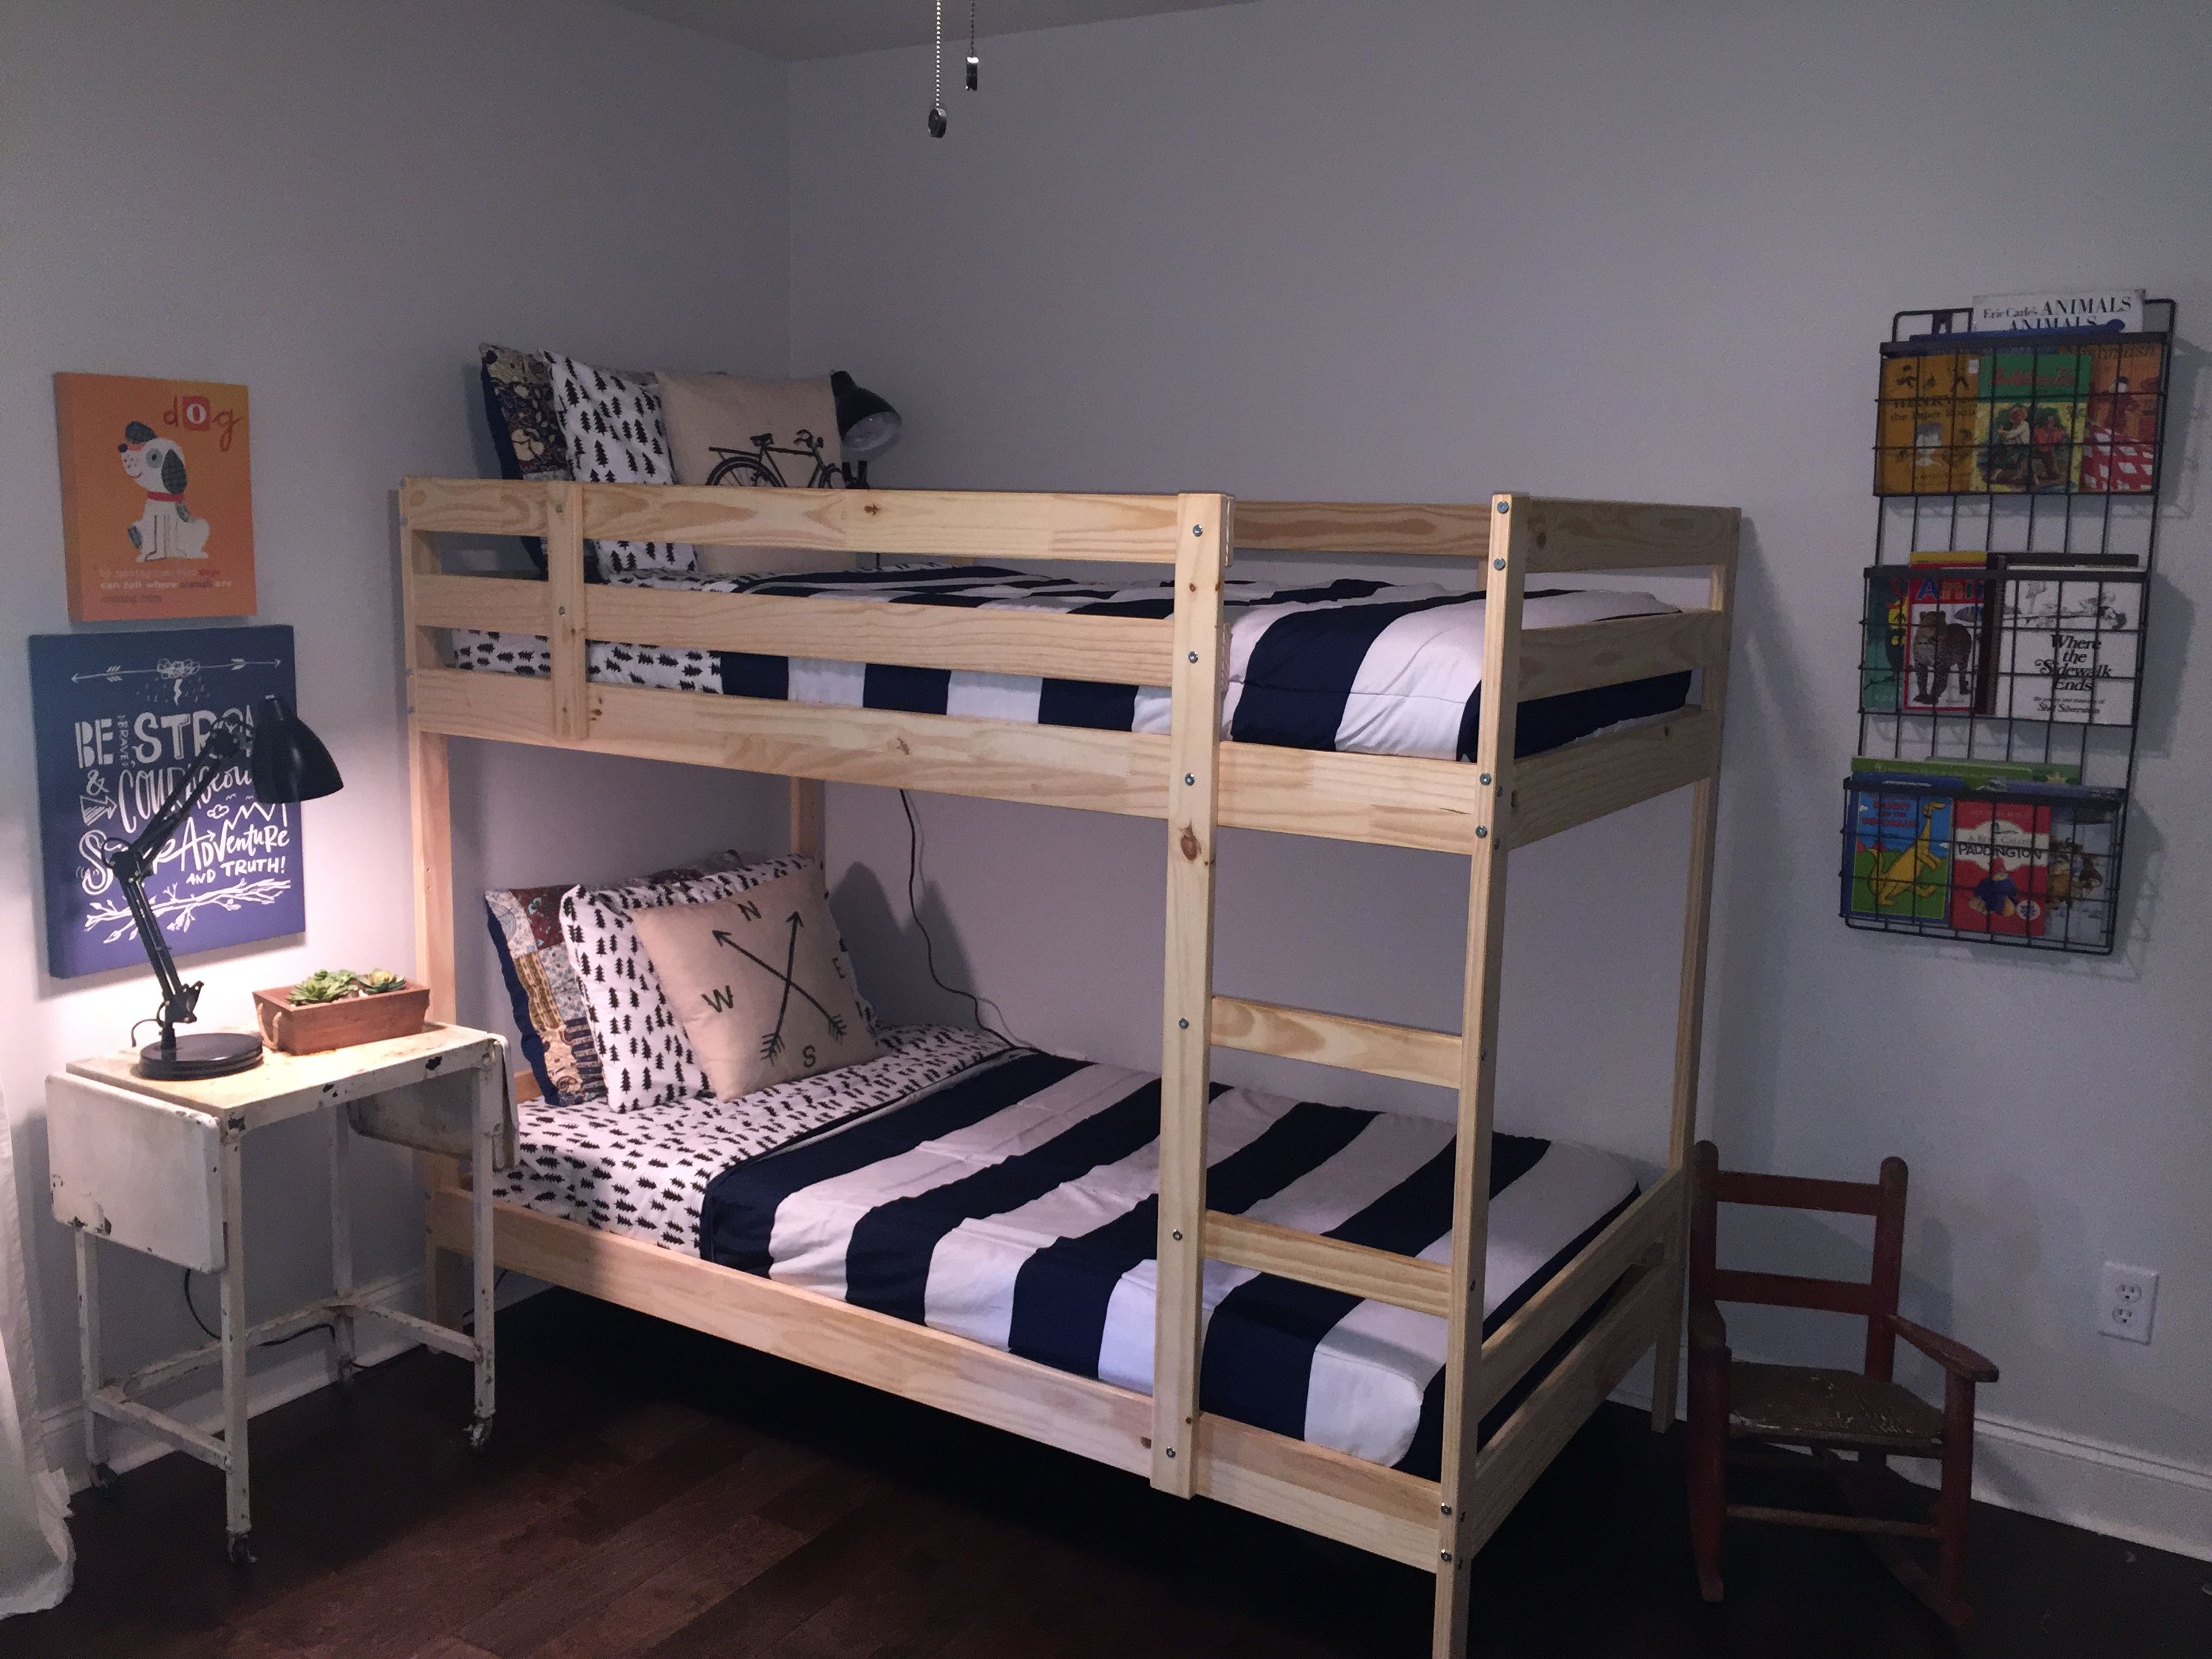 Ikea Etagenbett Mydal : Ikea mydal bunk beds #adventure shared boys room our house in